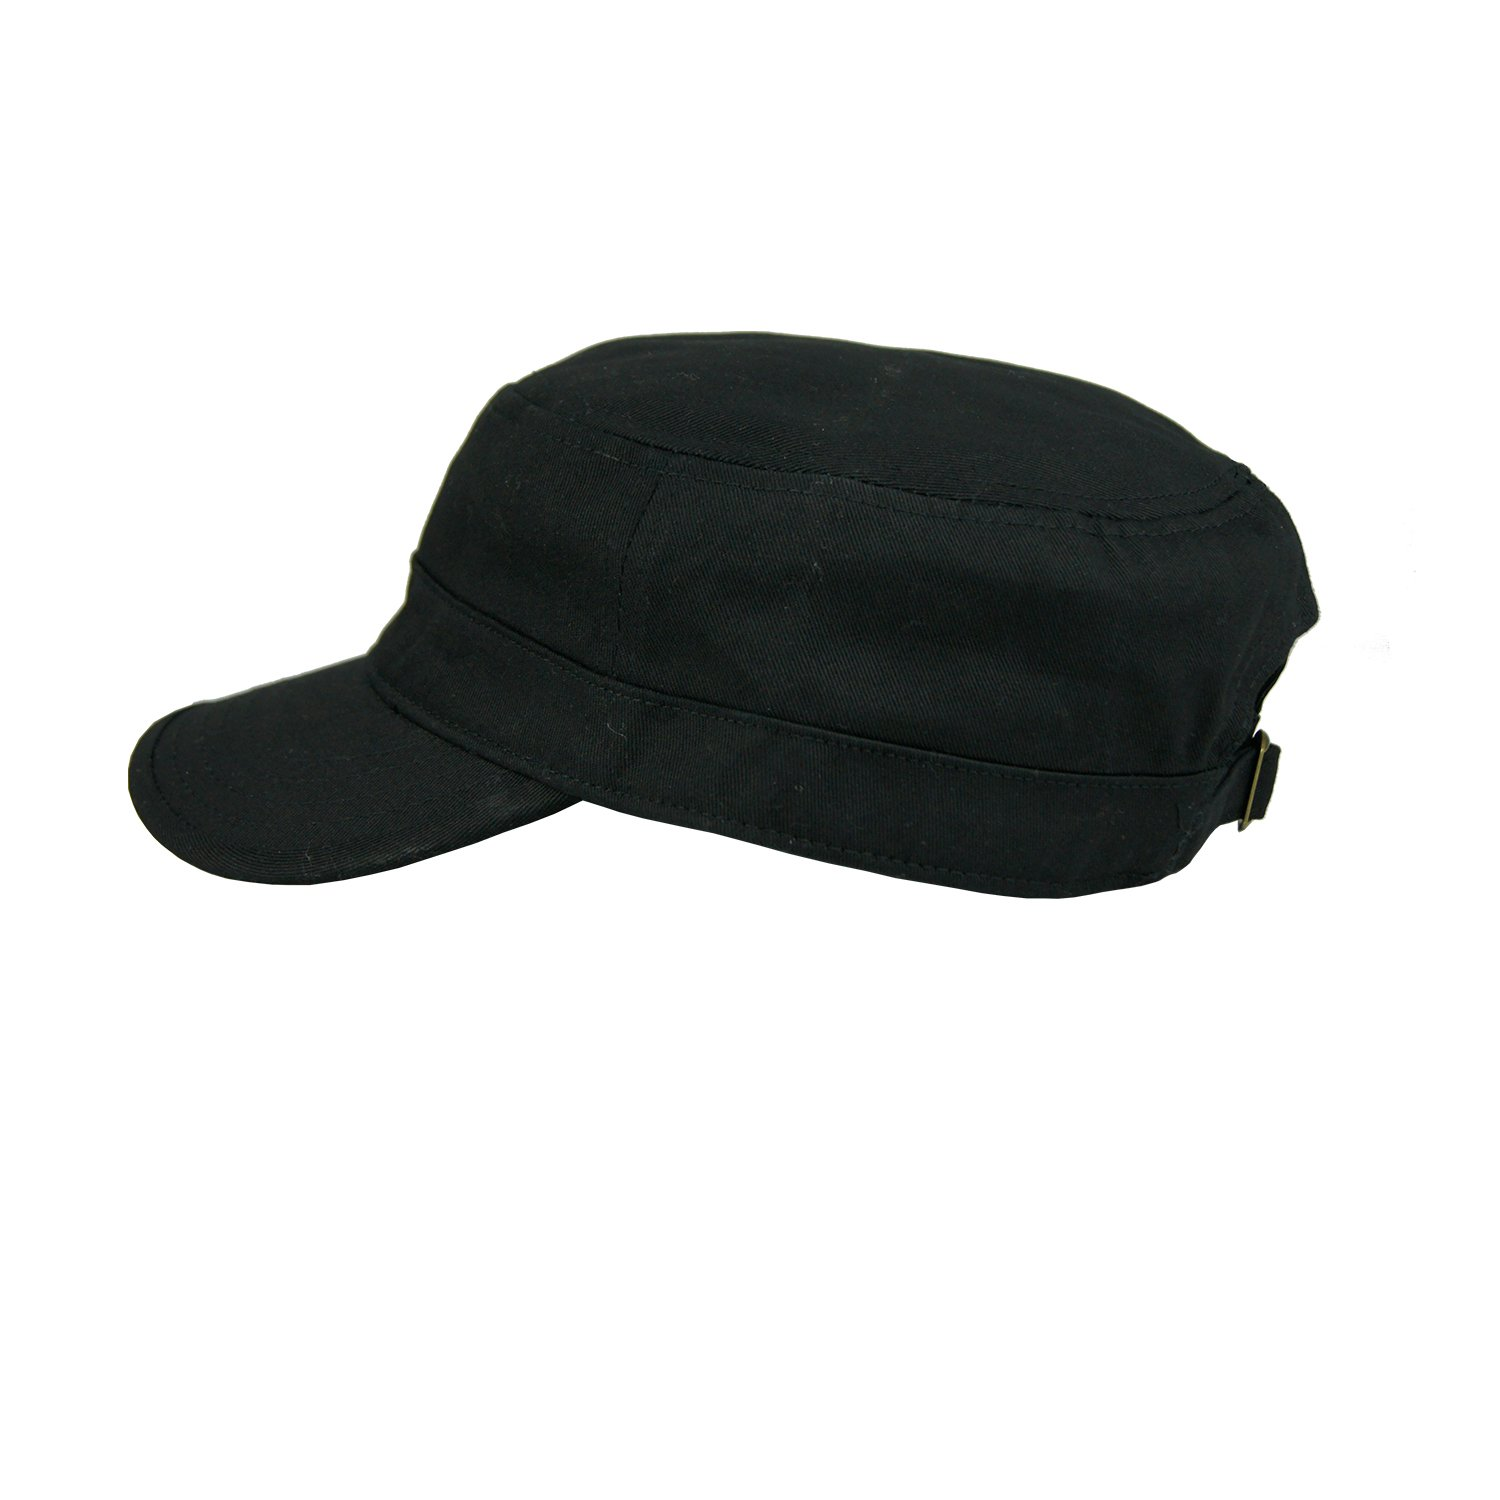 c762dce8959 Amazon.com  Free Bird 99 Low Profile Cotton Flat Top Peaked Army Military  Cadet Cap Hat (Black (15076))  Clothing